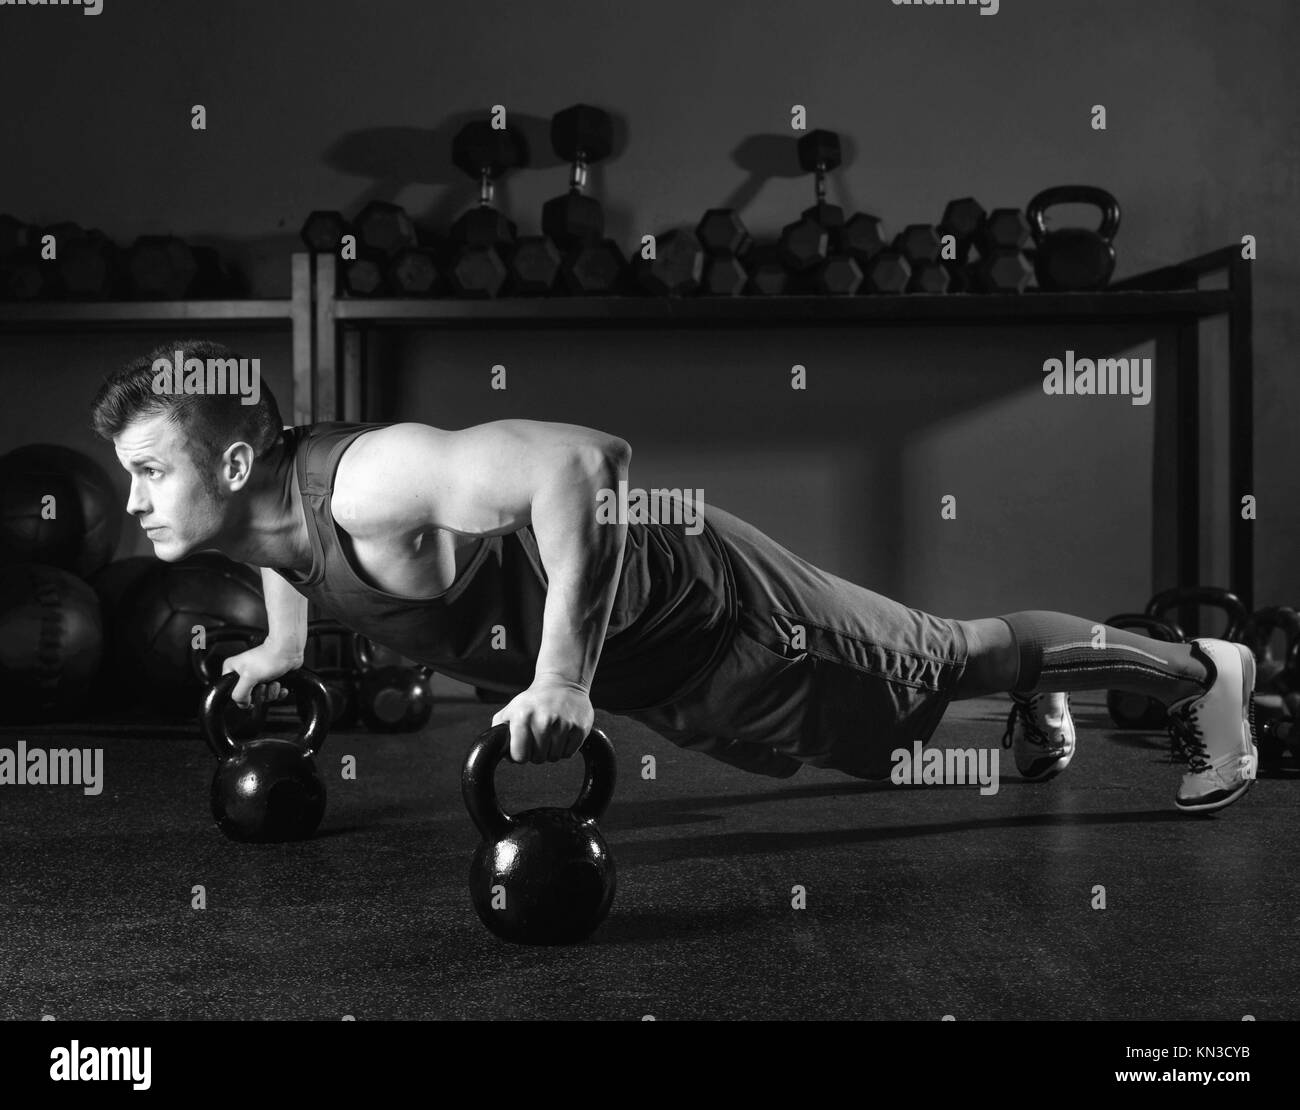 Kettlebells push-up man strength pushup exercise workout at gym. - Stock Image